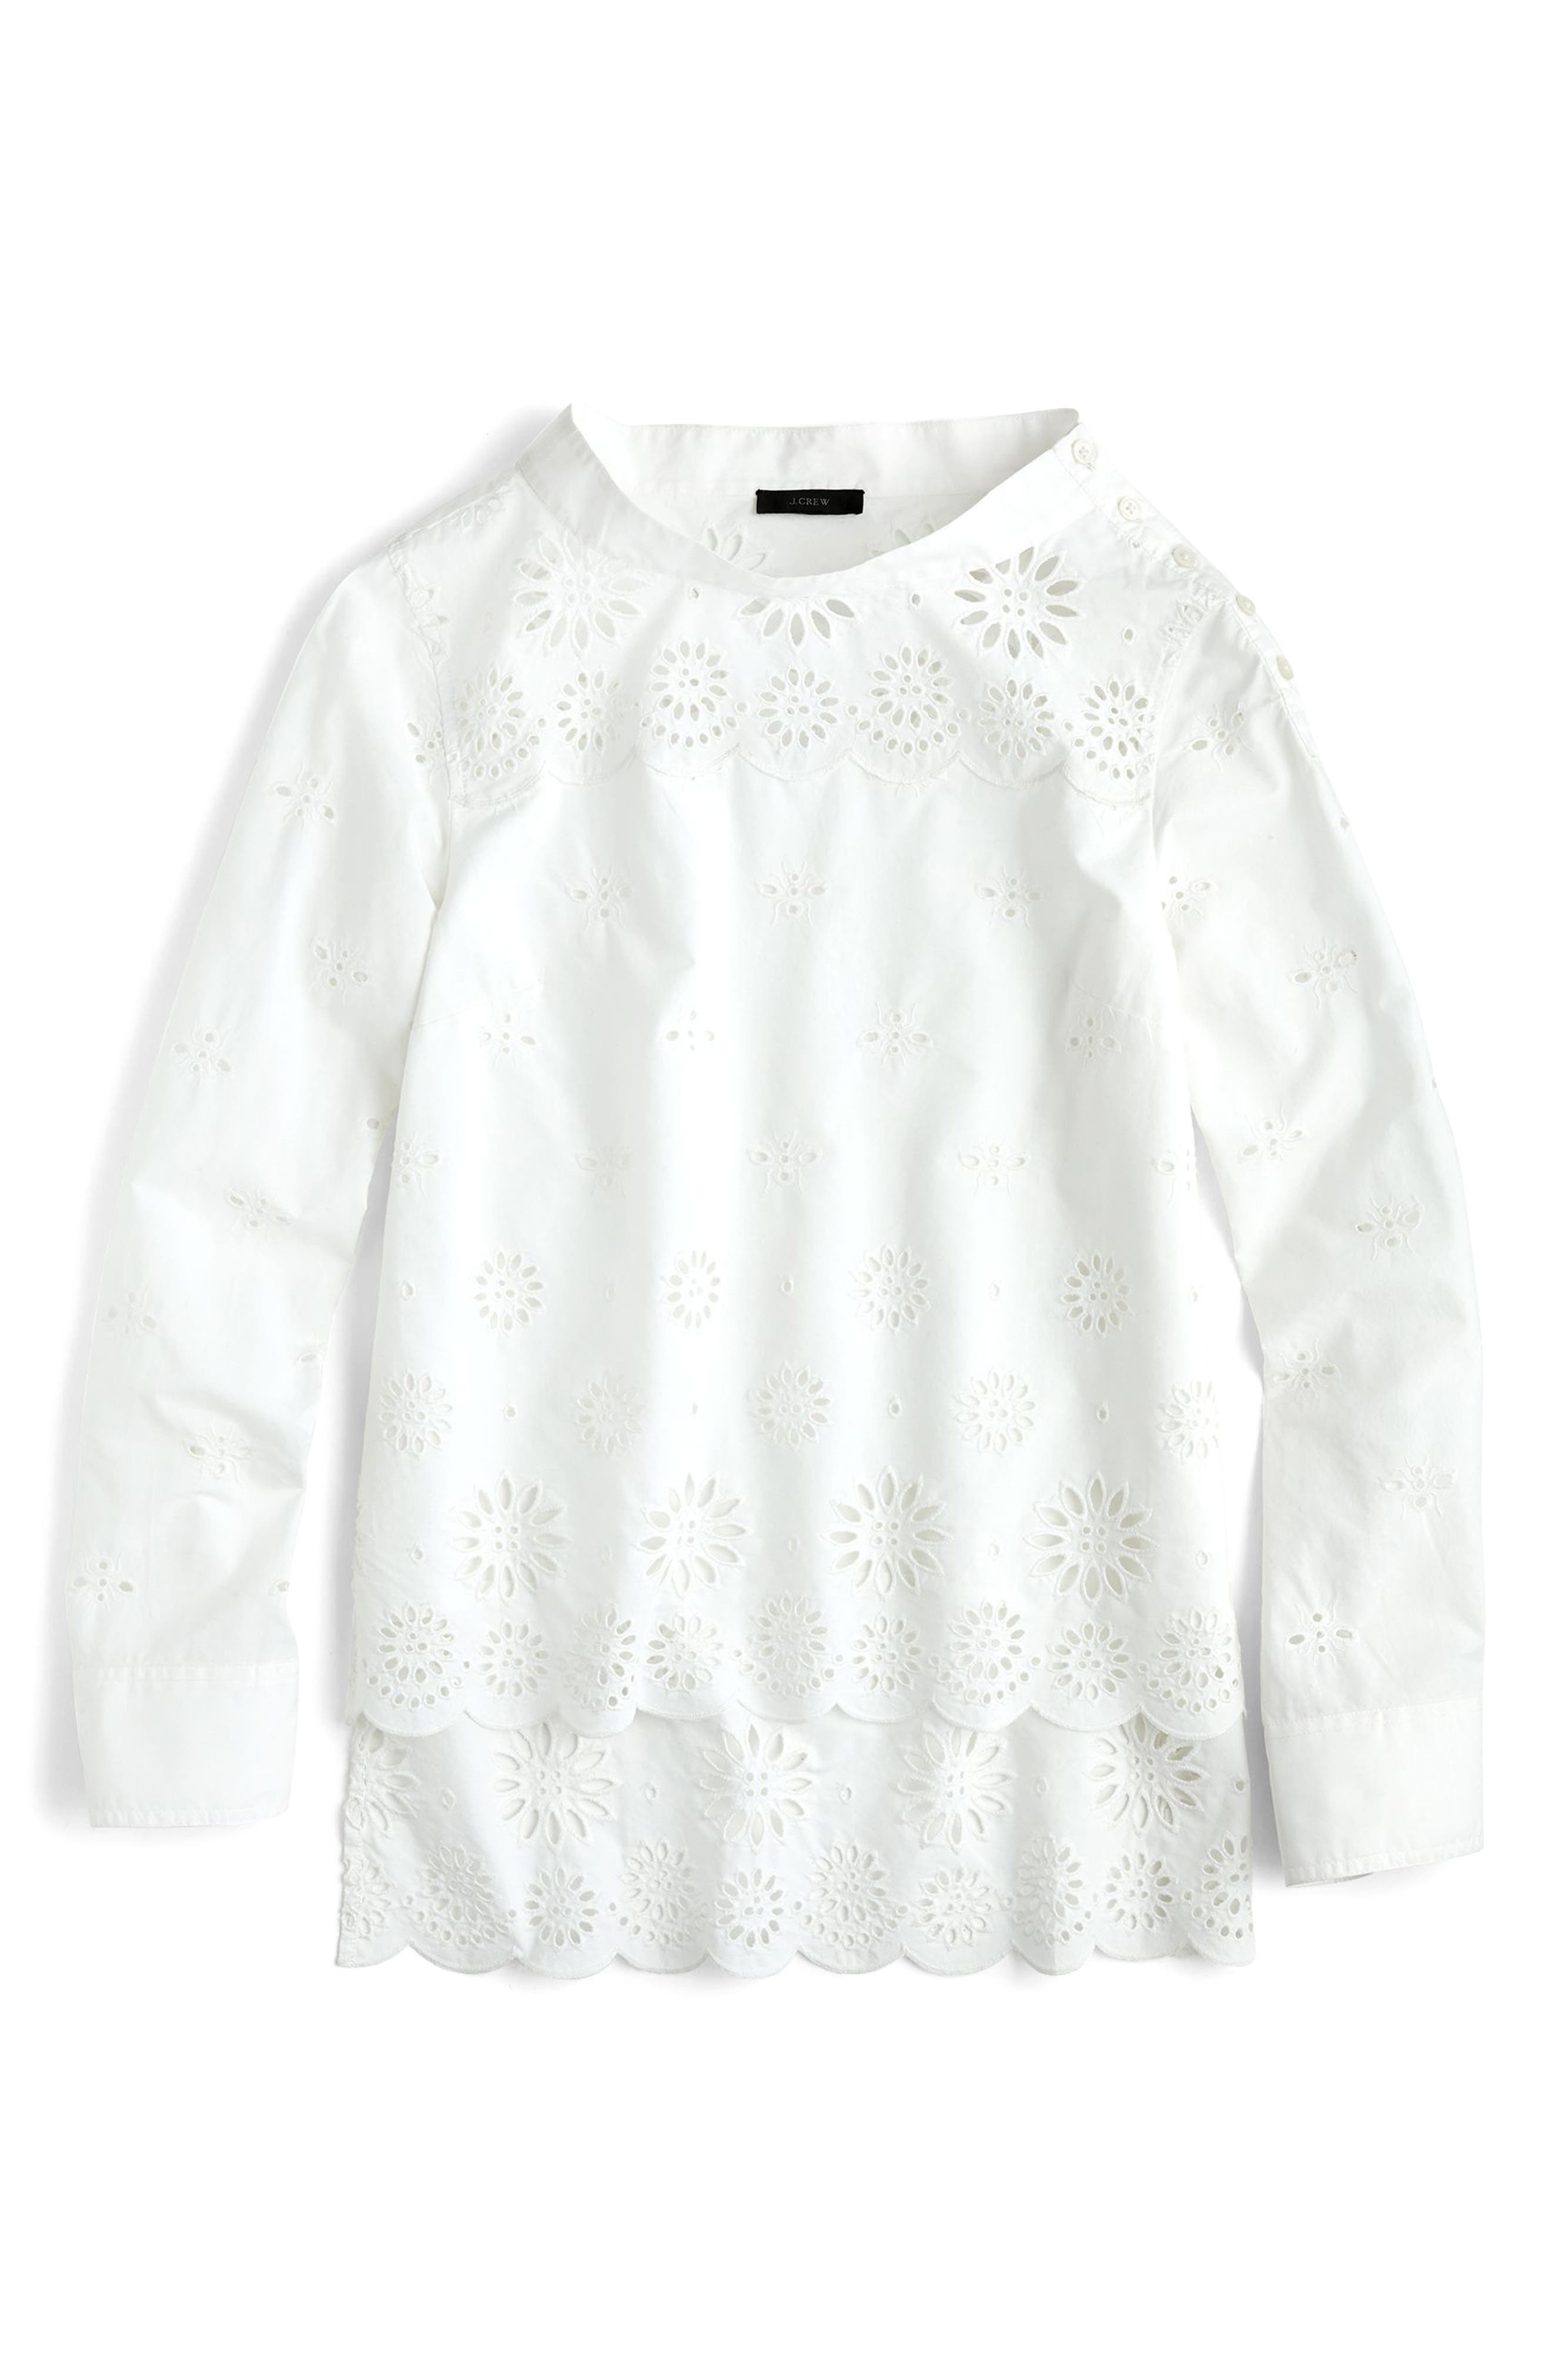 J.Crew Rooster Eyelet Cotton Top,                         Main,                         color, White